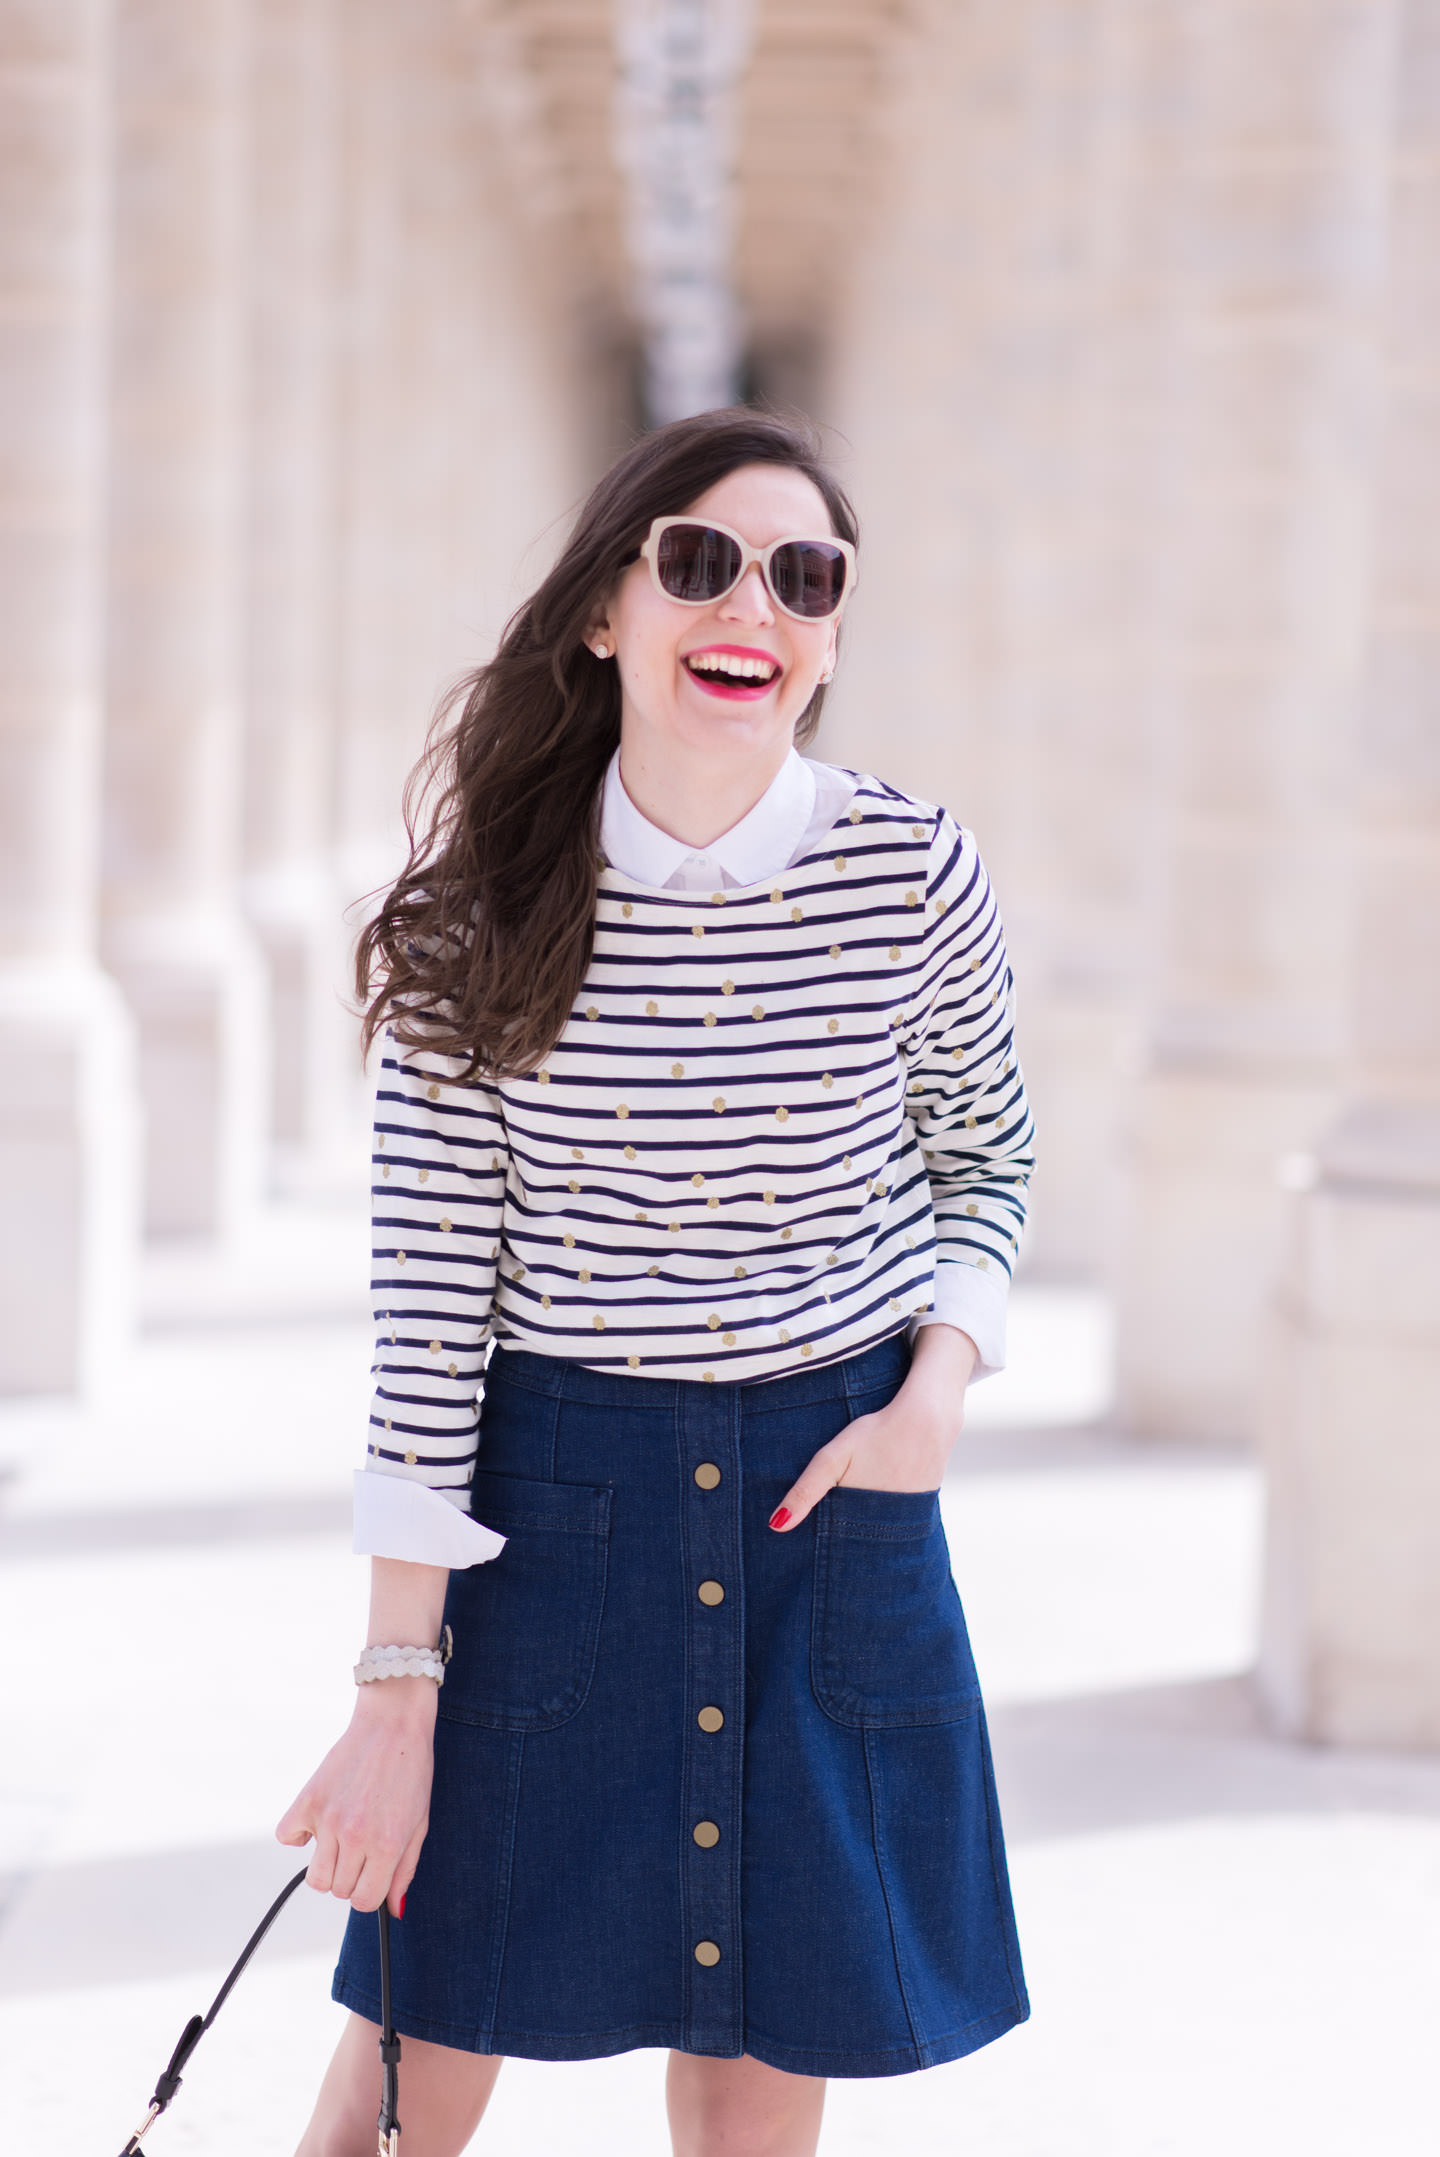 Blog-Mode-And-The-City-Looks-Le-Printemps-en-Boden-7